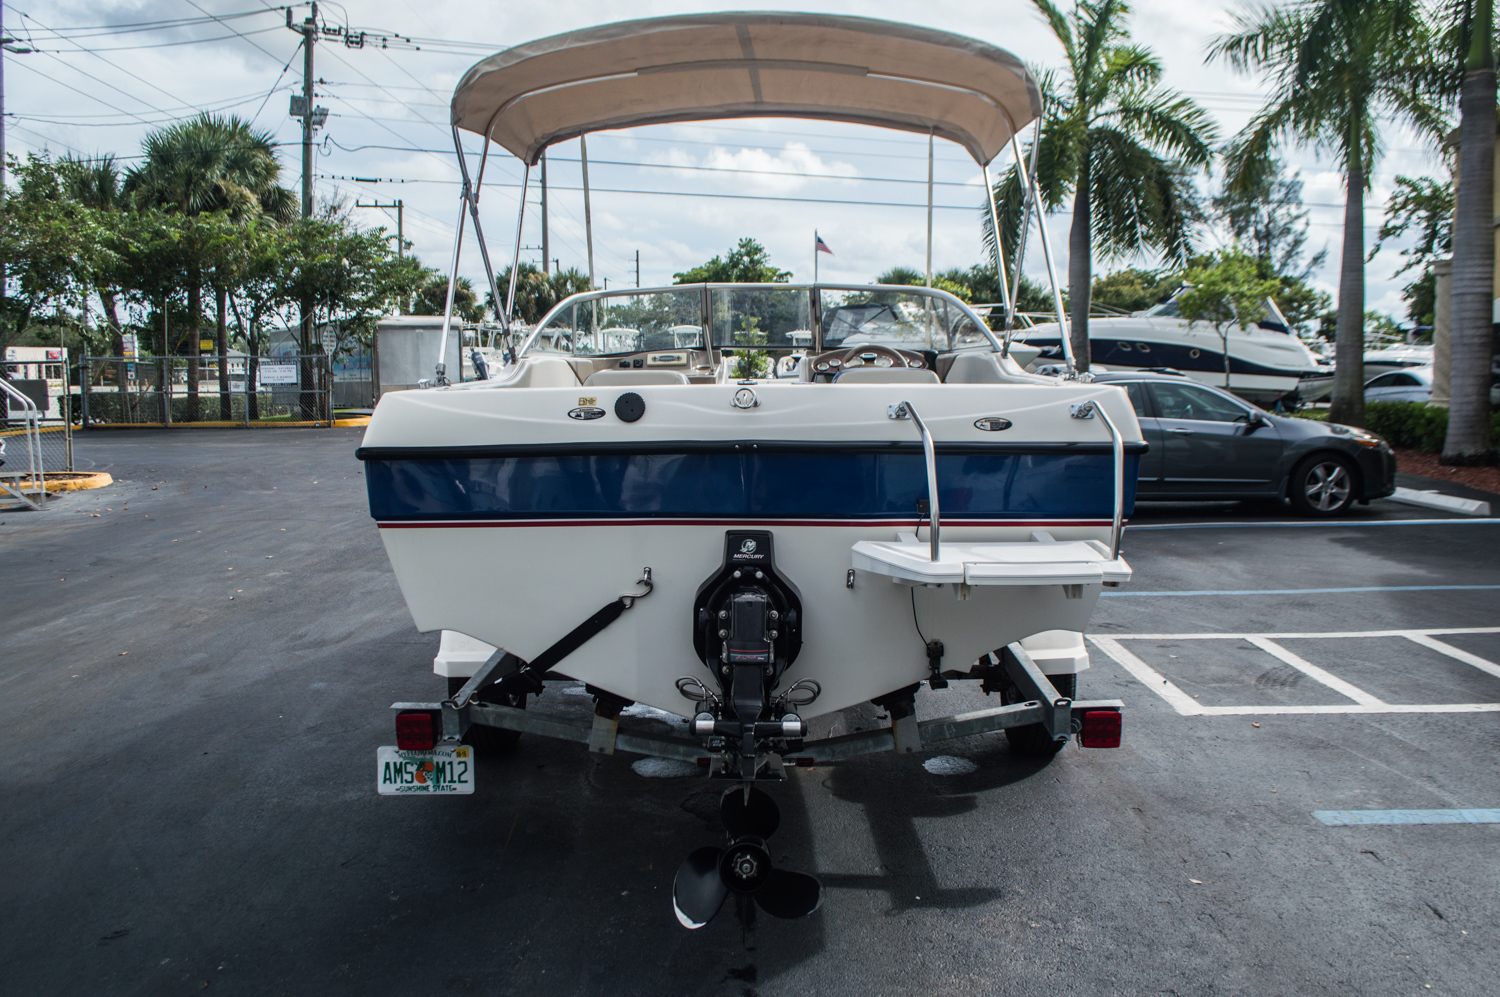 Thumbnail 2 for Used 2005 Bayliner 195 Classic boat for sale in West Palm Beach, FL